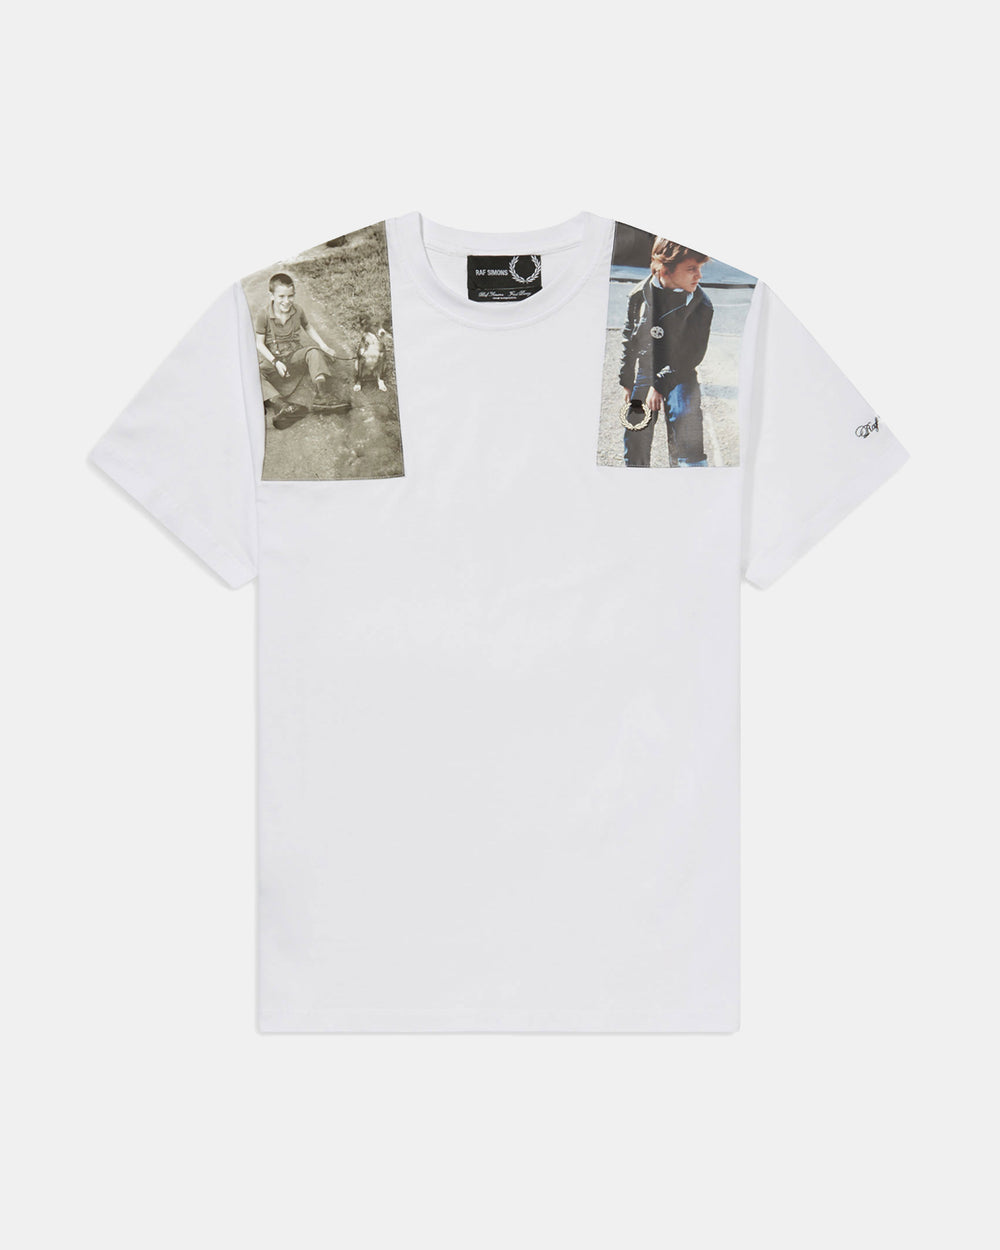 Fred Perry - Raf Simons Shoulder Print Tee (White)